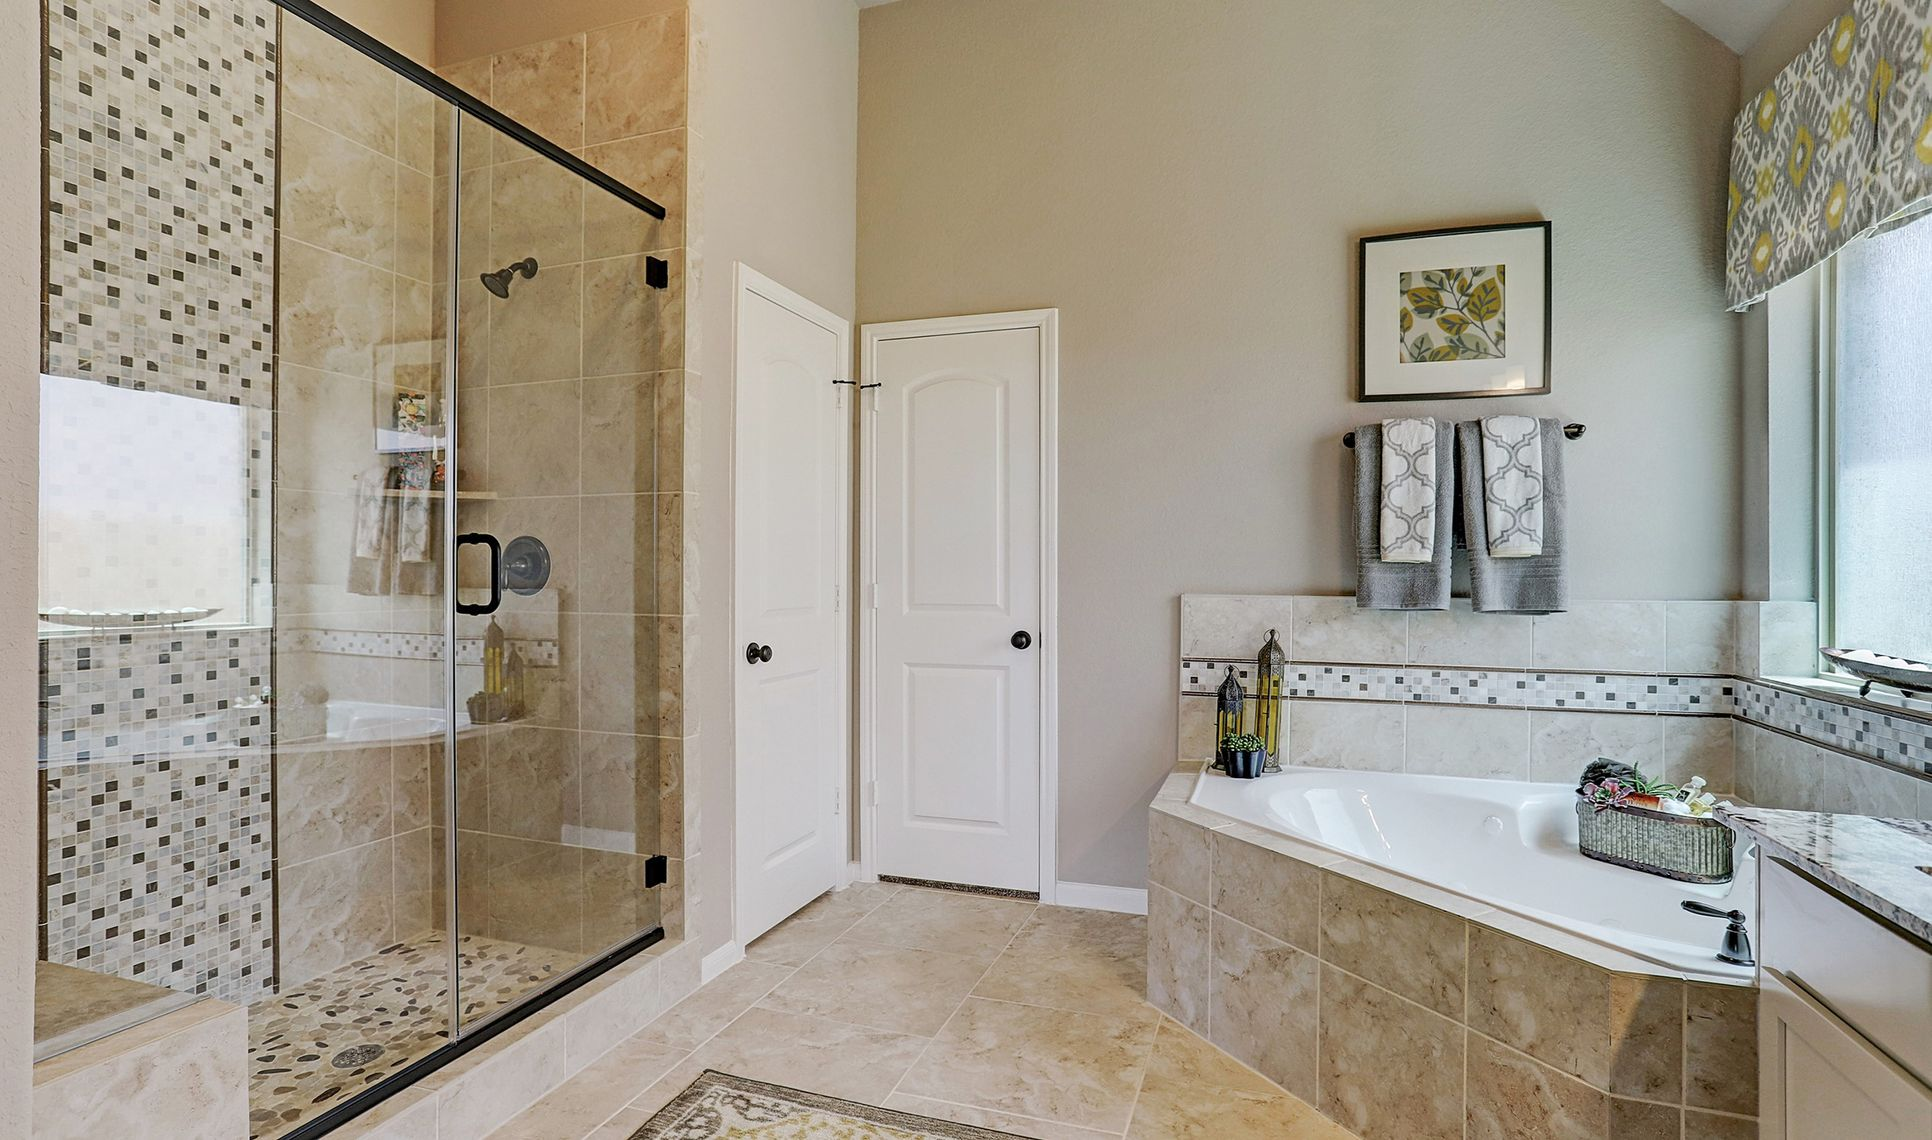 Interior:Separate soaker tub and shower